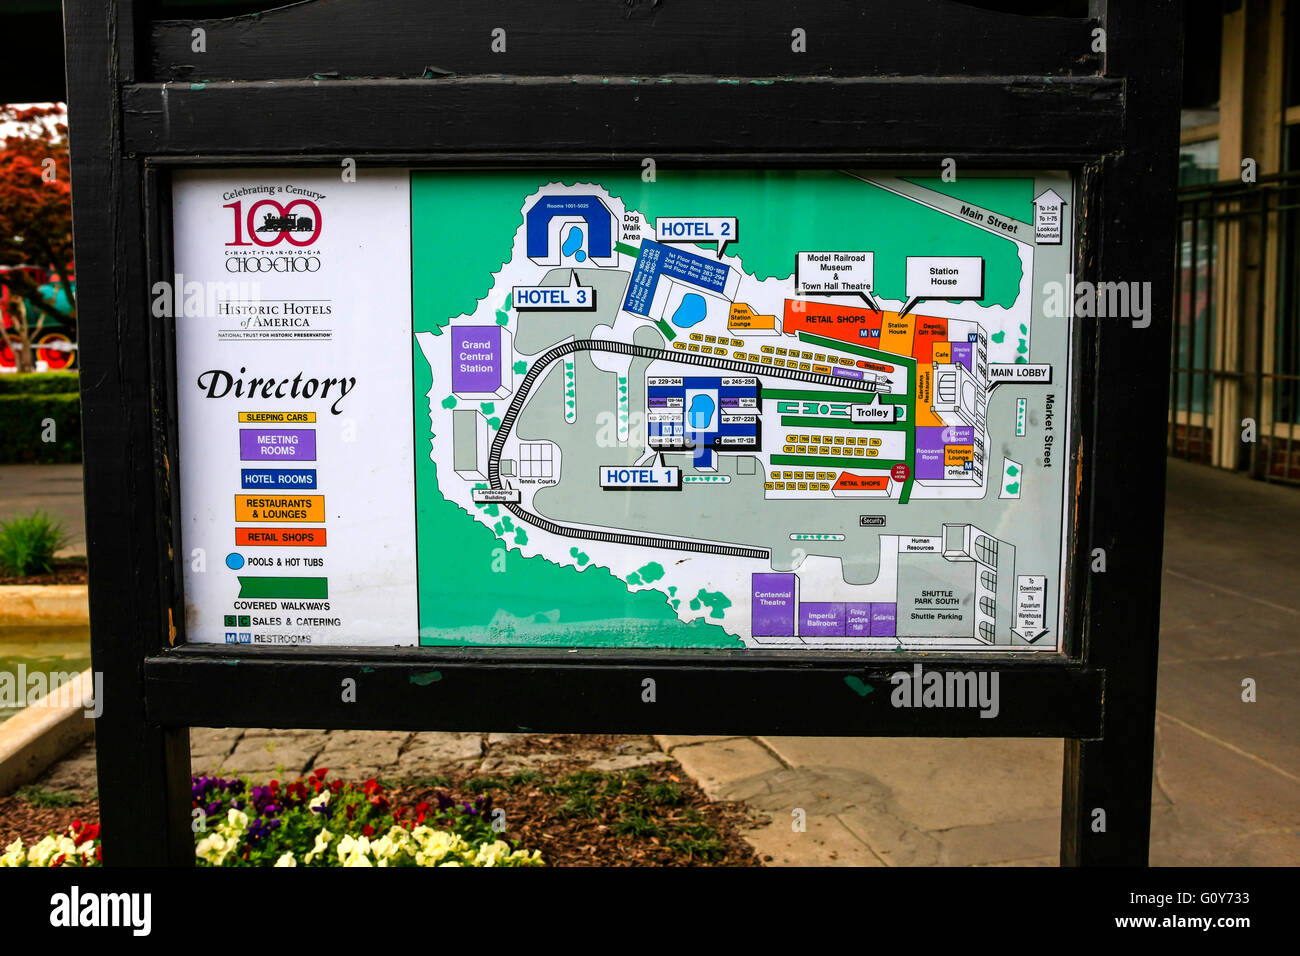 Chattanooga ChooChoo Station Hotel area map in downtown Chattanooga